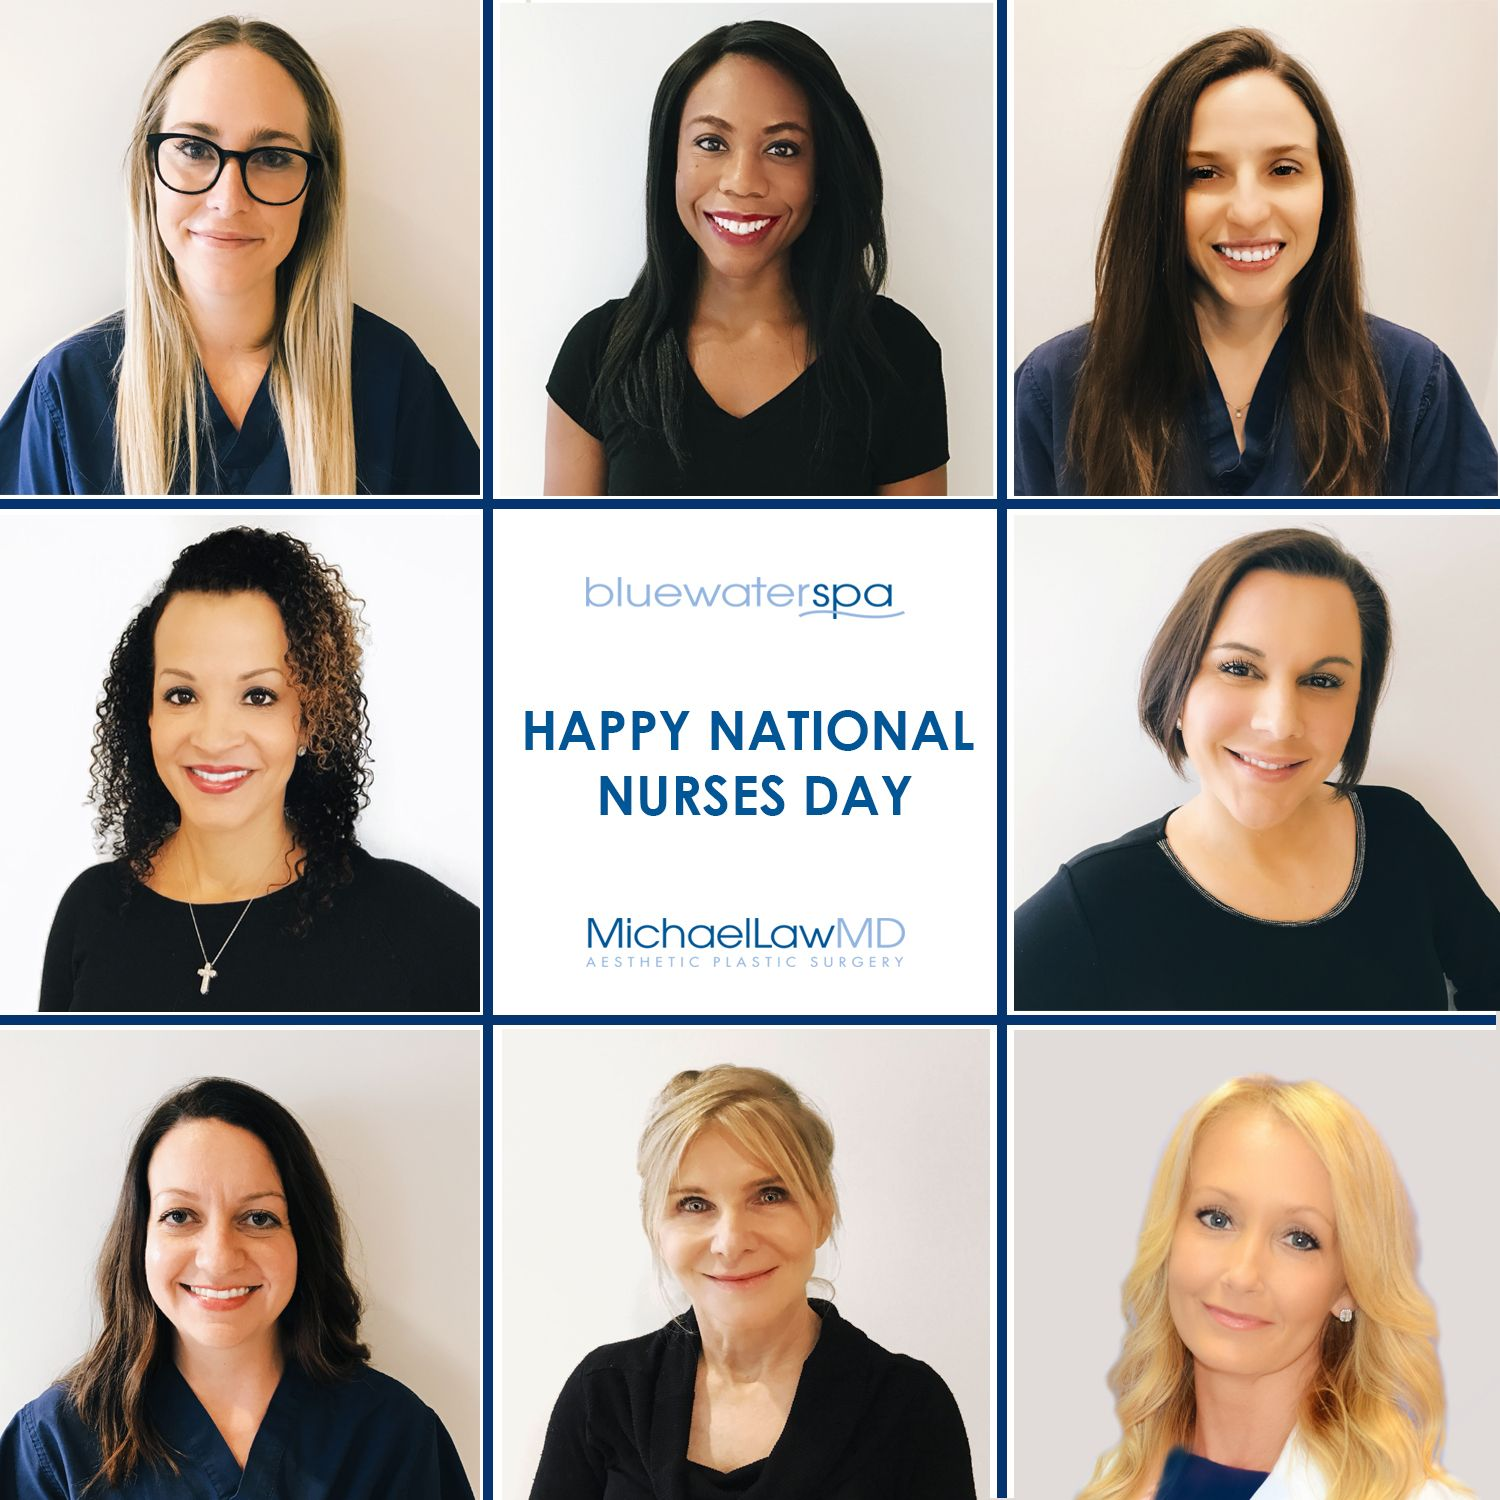 Happy National Nurses Day Laser hair removal, Botox